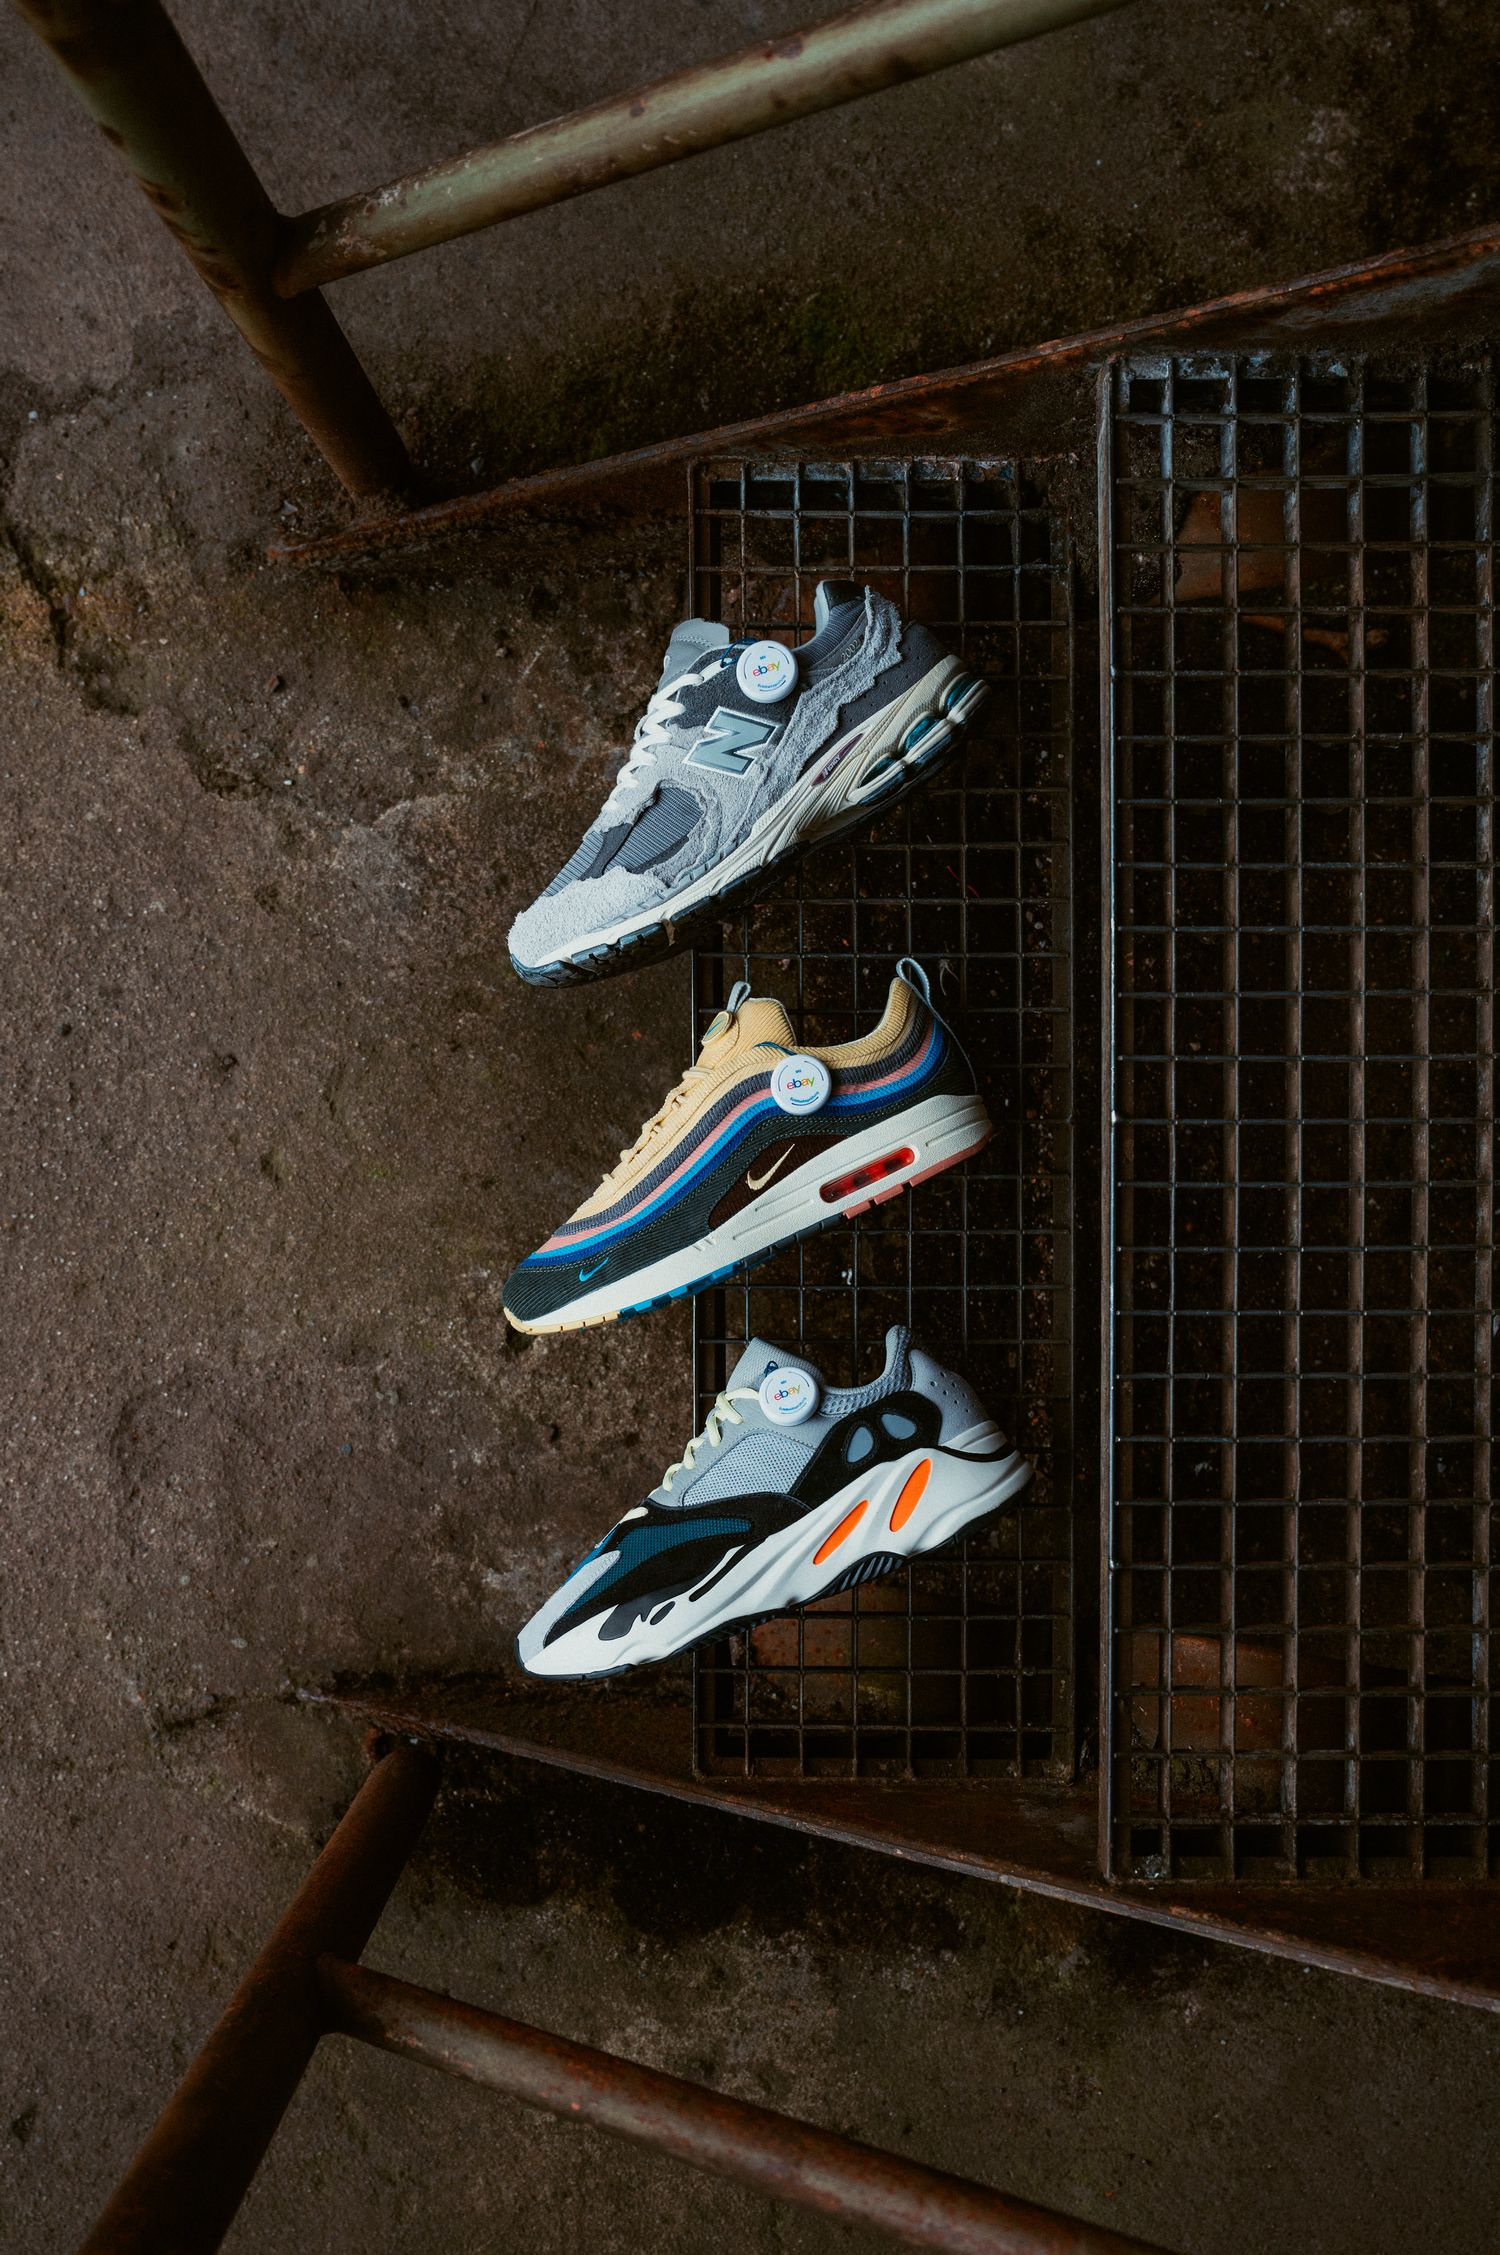 New Balance 2002R Protection Pack /Nike x Sean Wotherspoon Air Max 1/97 /adidas Yeezy Boost 700 Wave Runner Solid Grey